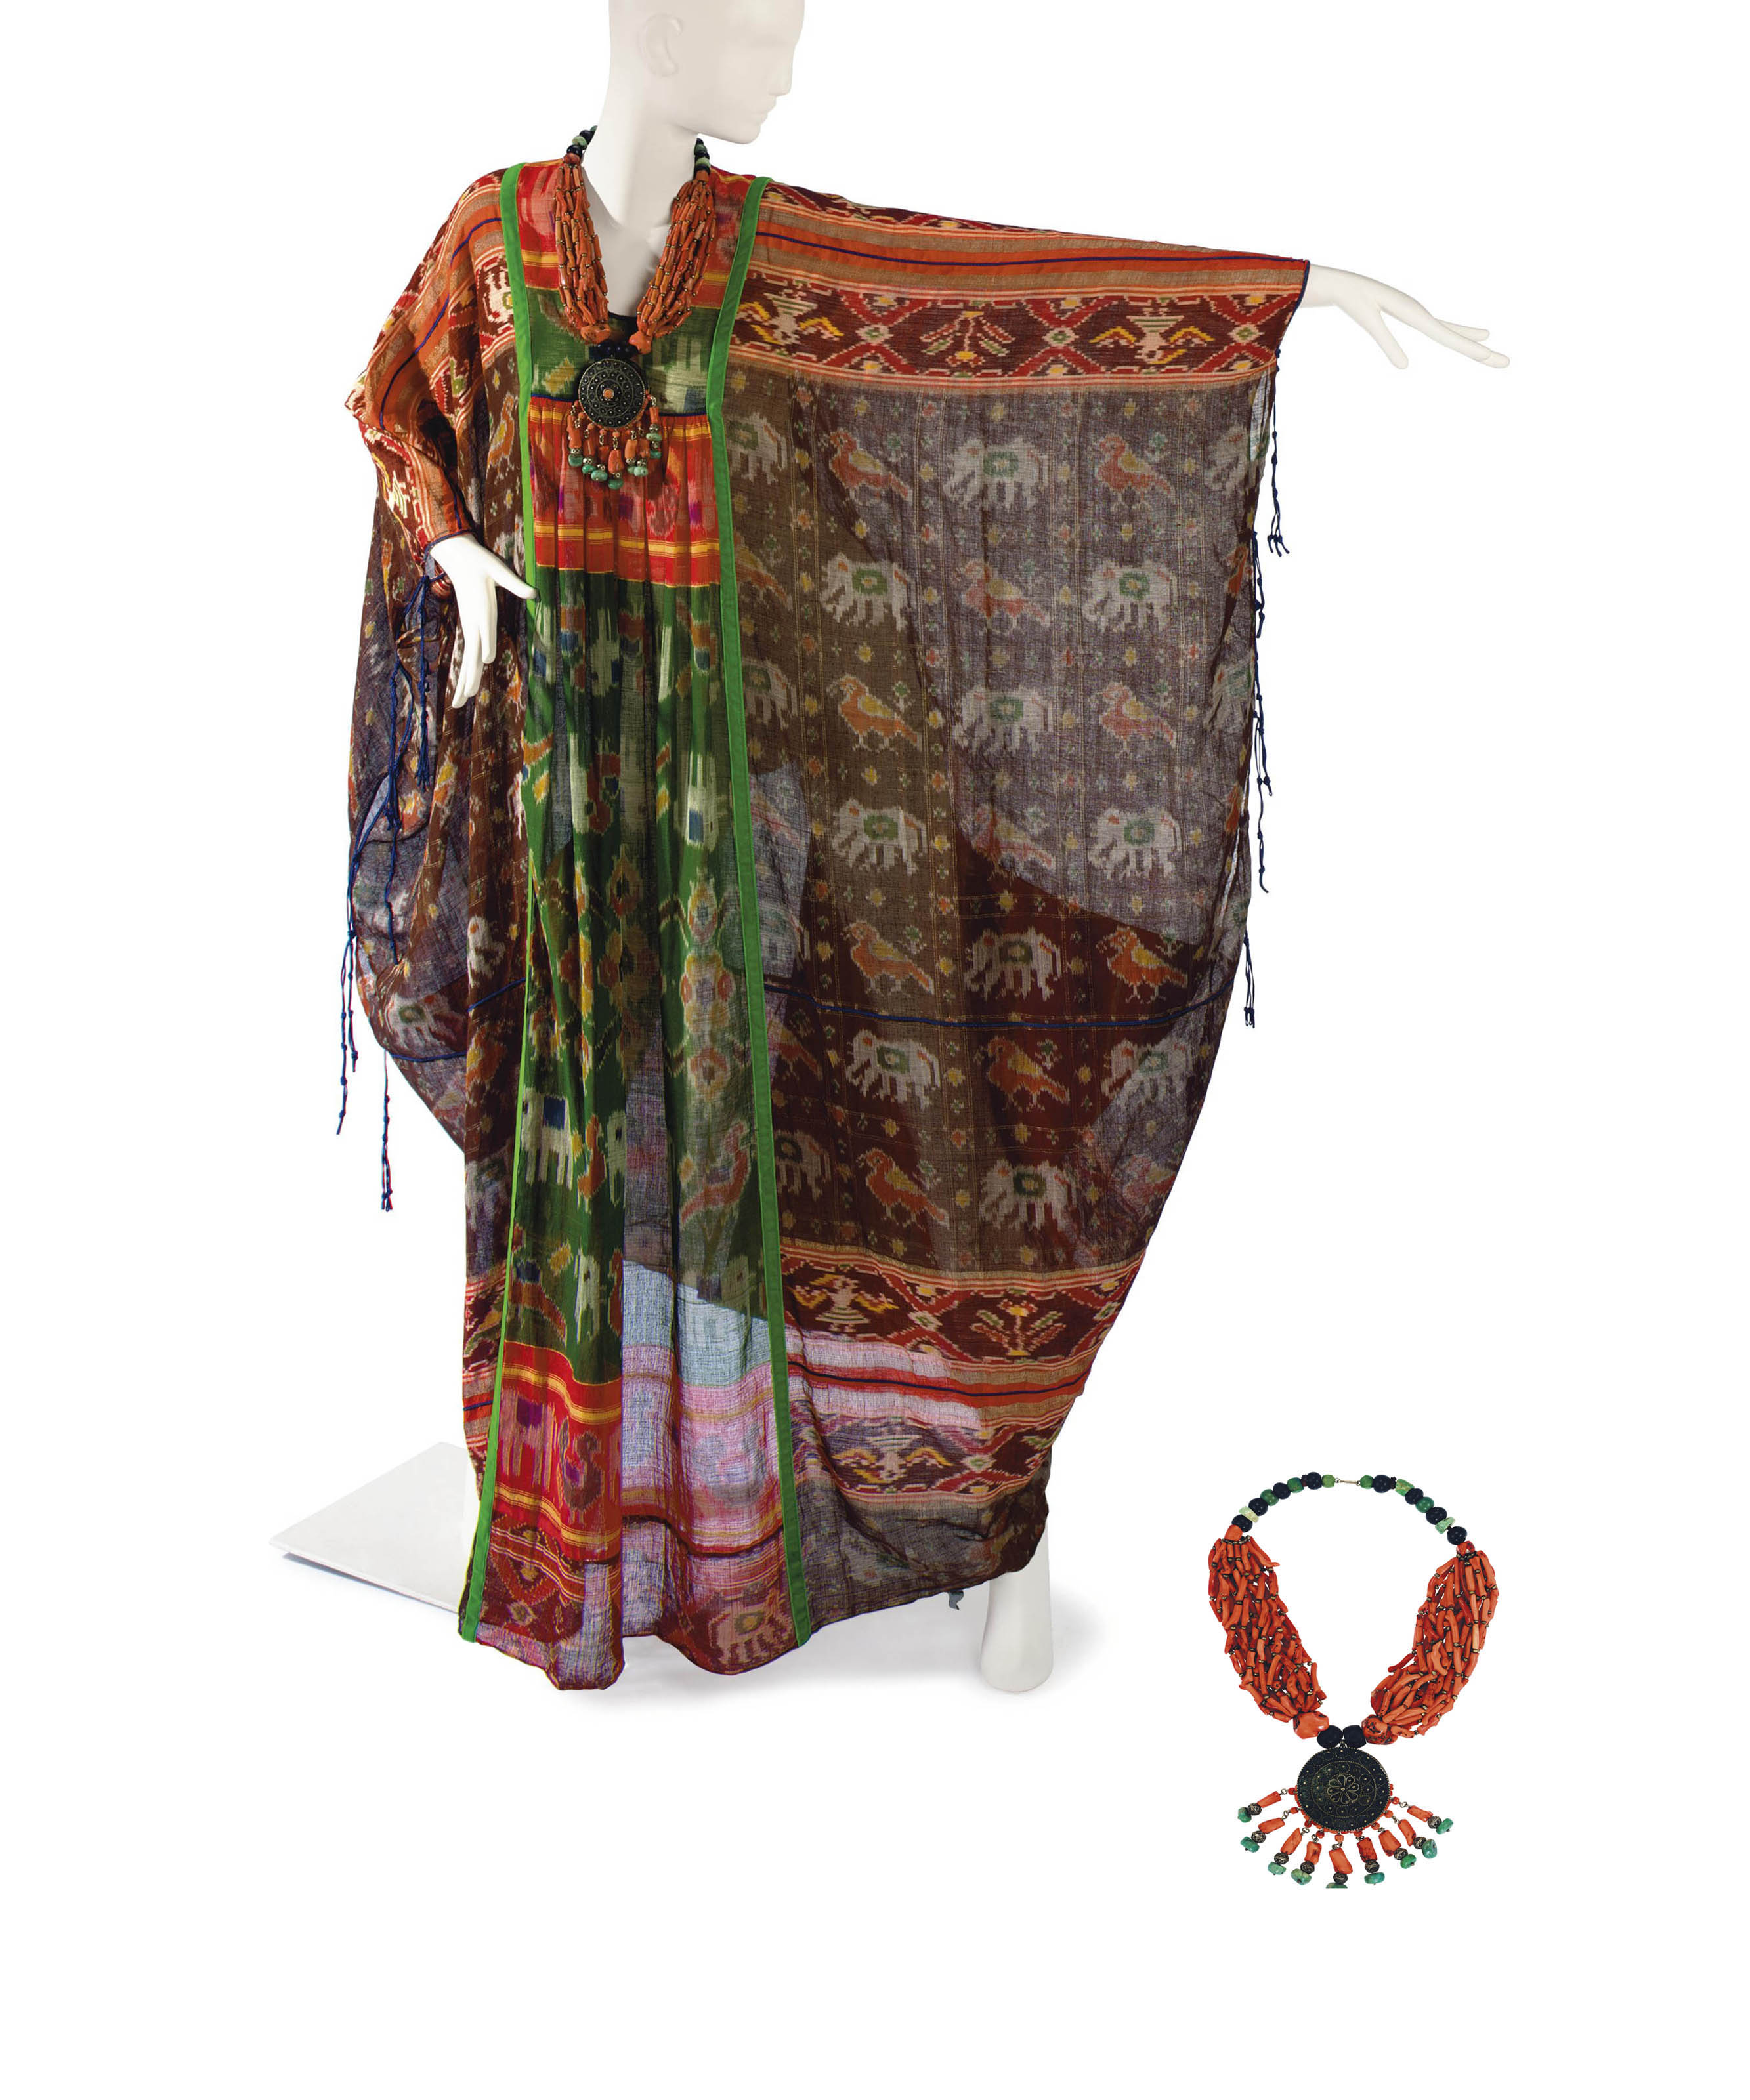 A THEA PORTER CAFTAN OF COTTON IKAT WITH ASSOCIATED TRADITIONAL MULTI-STRAND NECKLACE